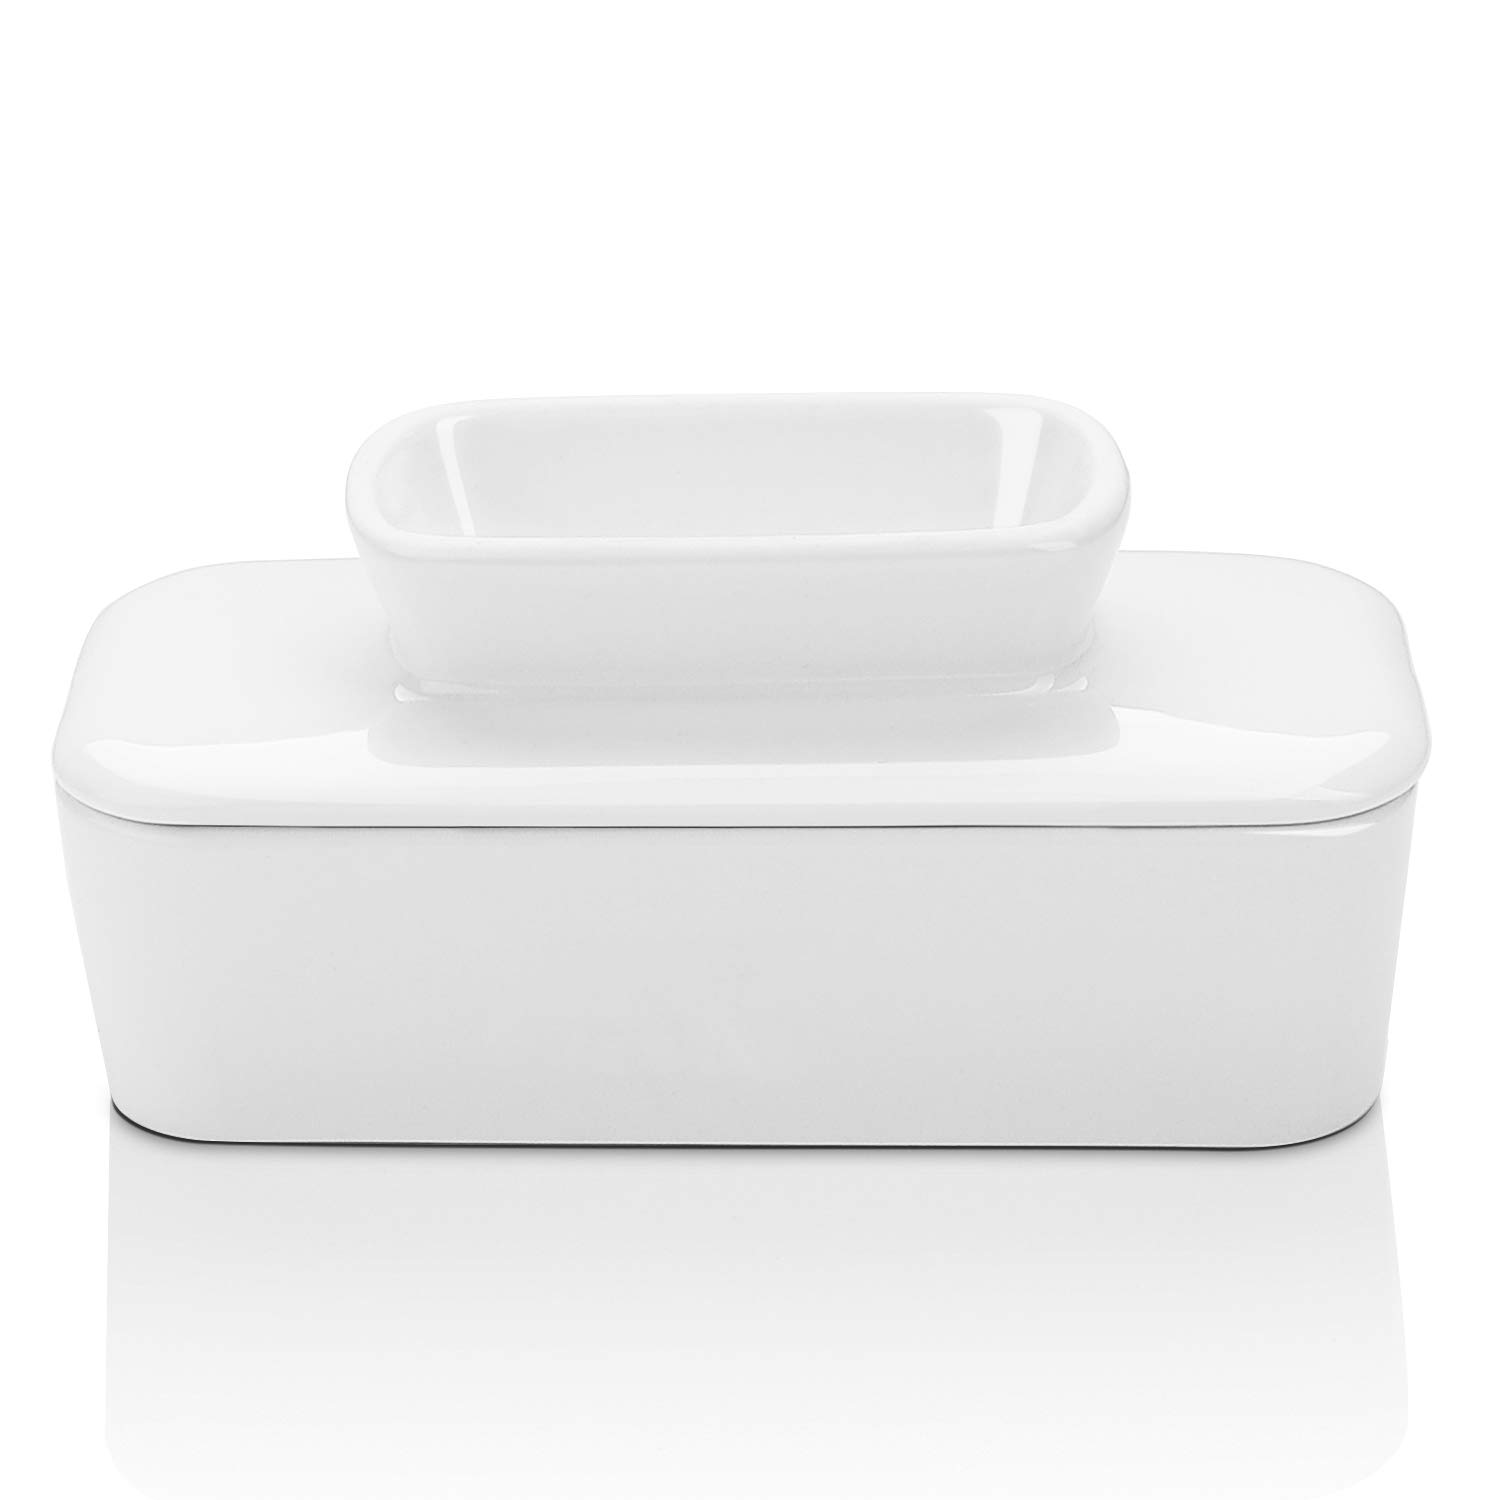 Sweese 3126 Porcelain Butter Water